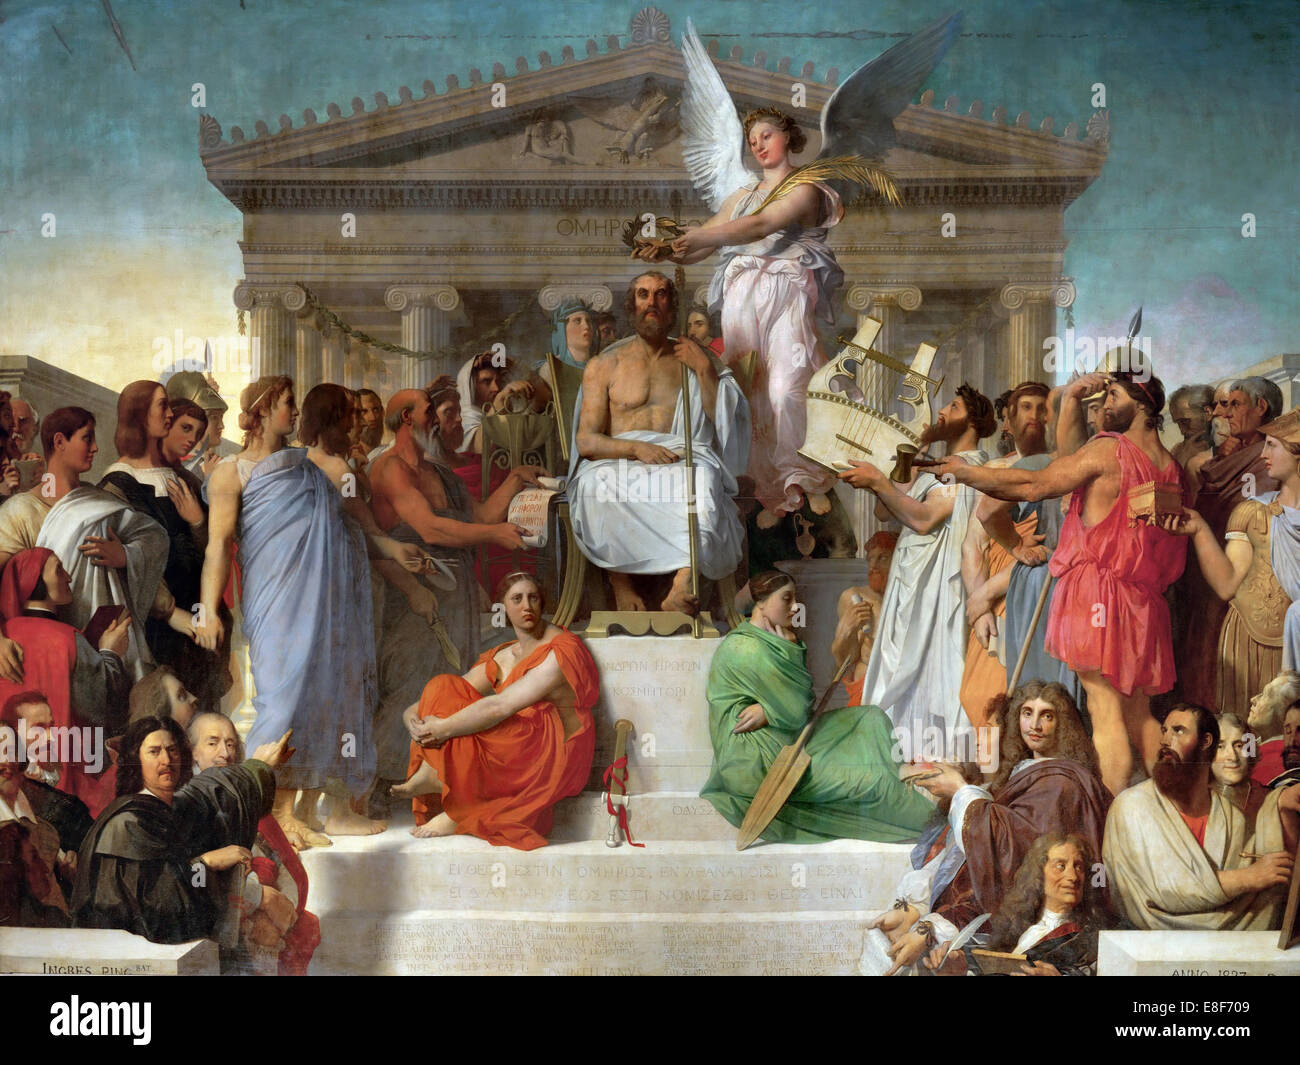 The Apotheosis of Homer. Artist: Ingres, Jean Auguste Dominique (1780-1867) - Stock Image